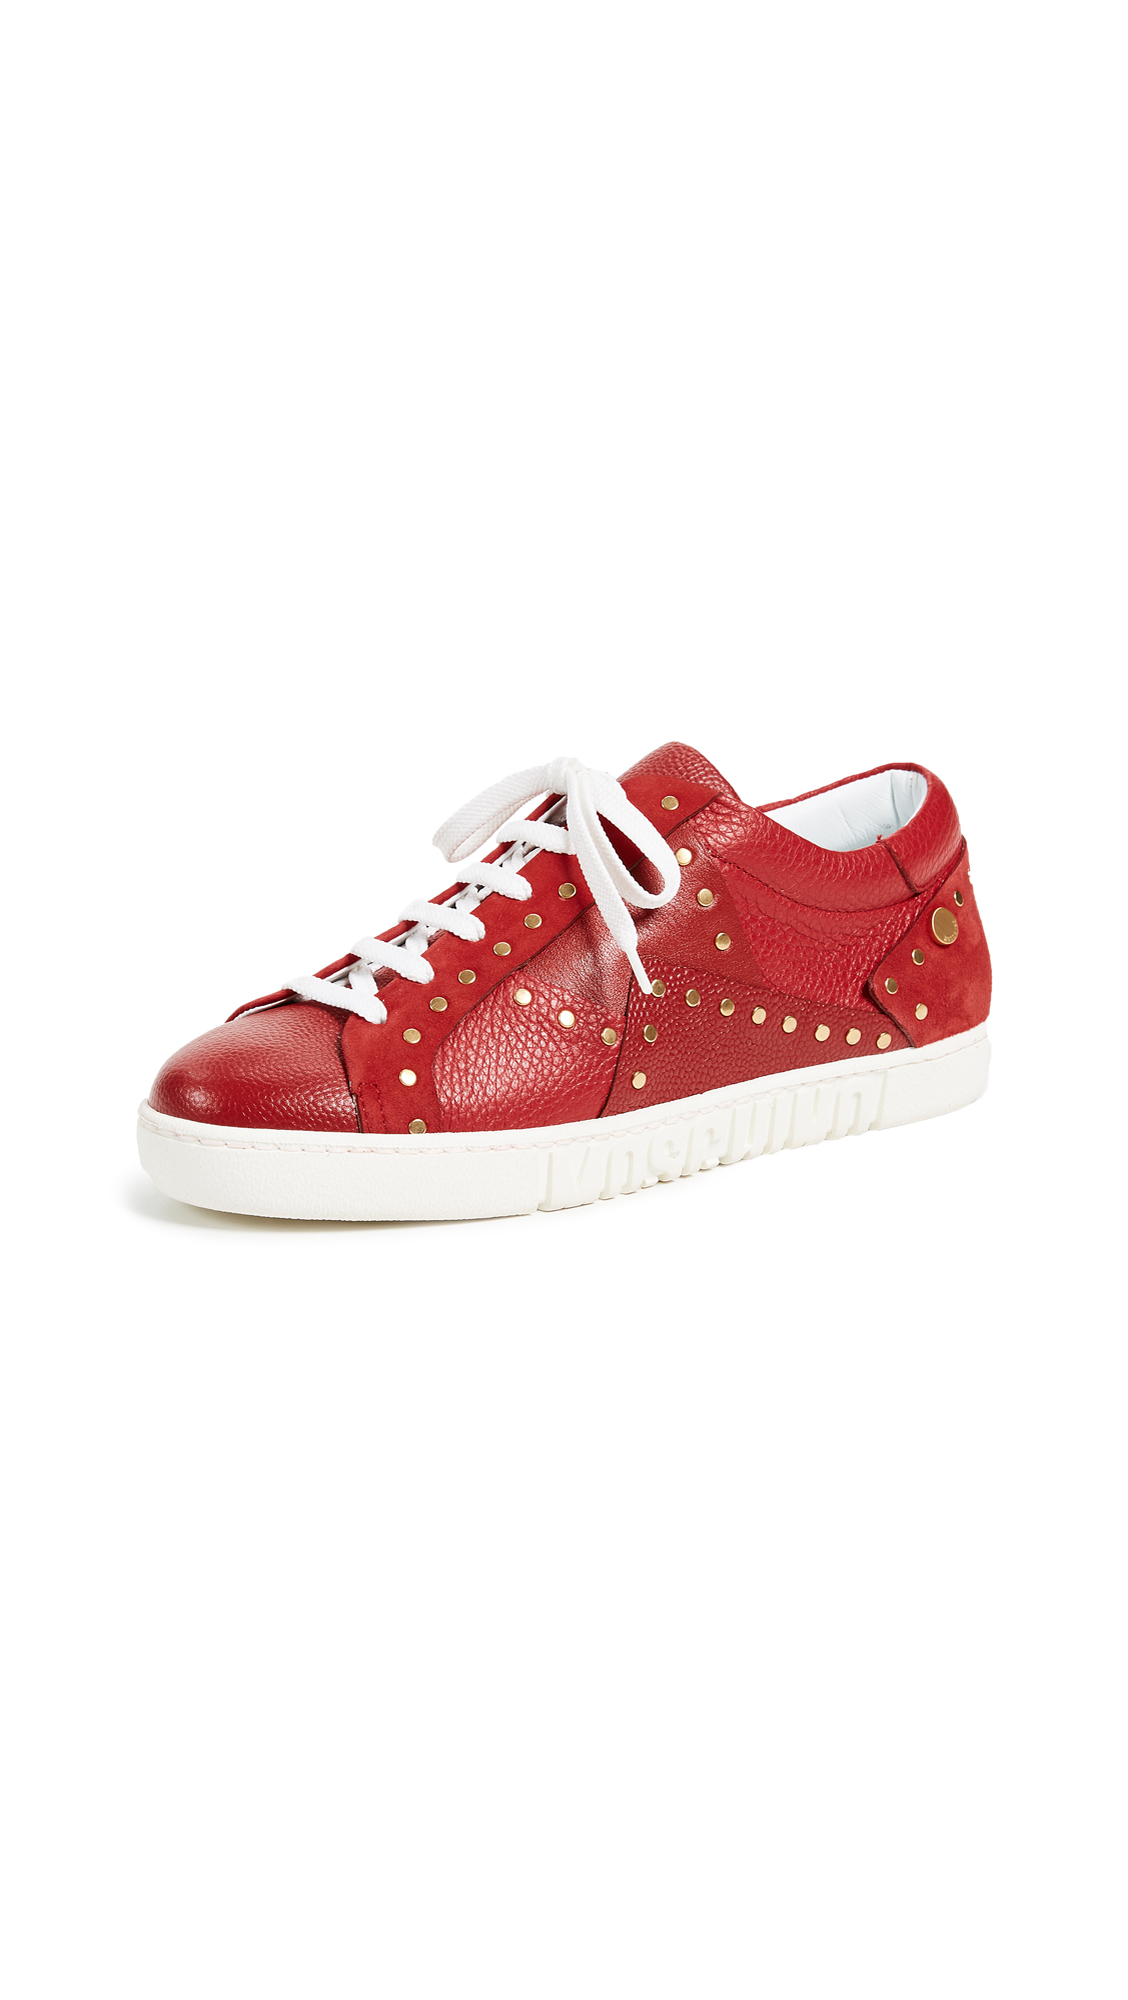 Moschino Studded Sneakers - Burgundy